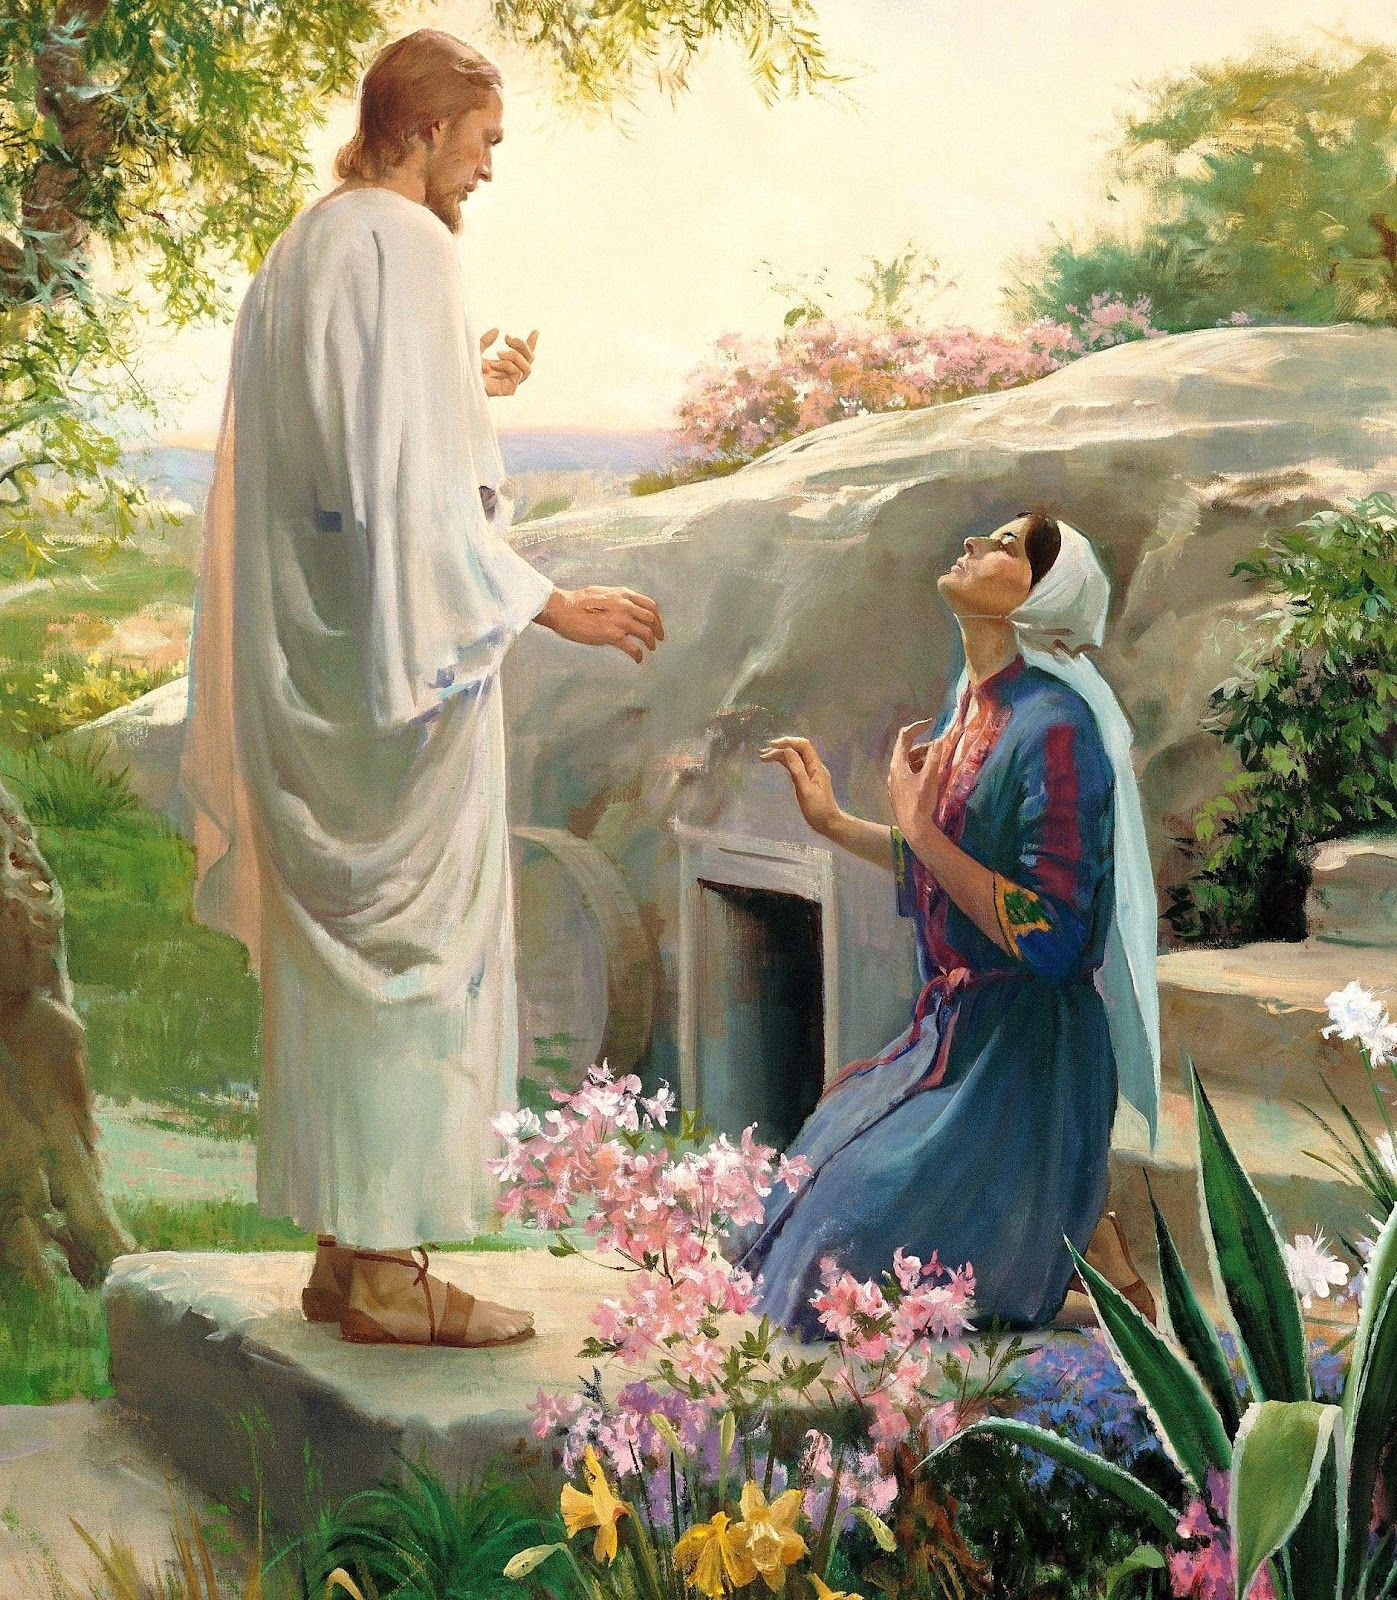 jesus and mary magdalene | Jesus Appears to Mary Magdalene | Jesus resurrection, Christ centered easter, Pictures  of christ